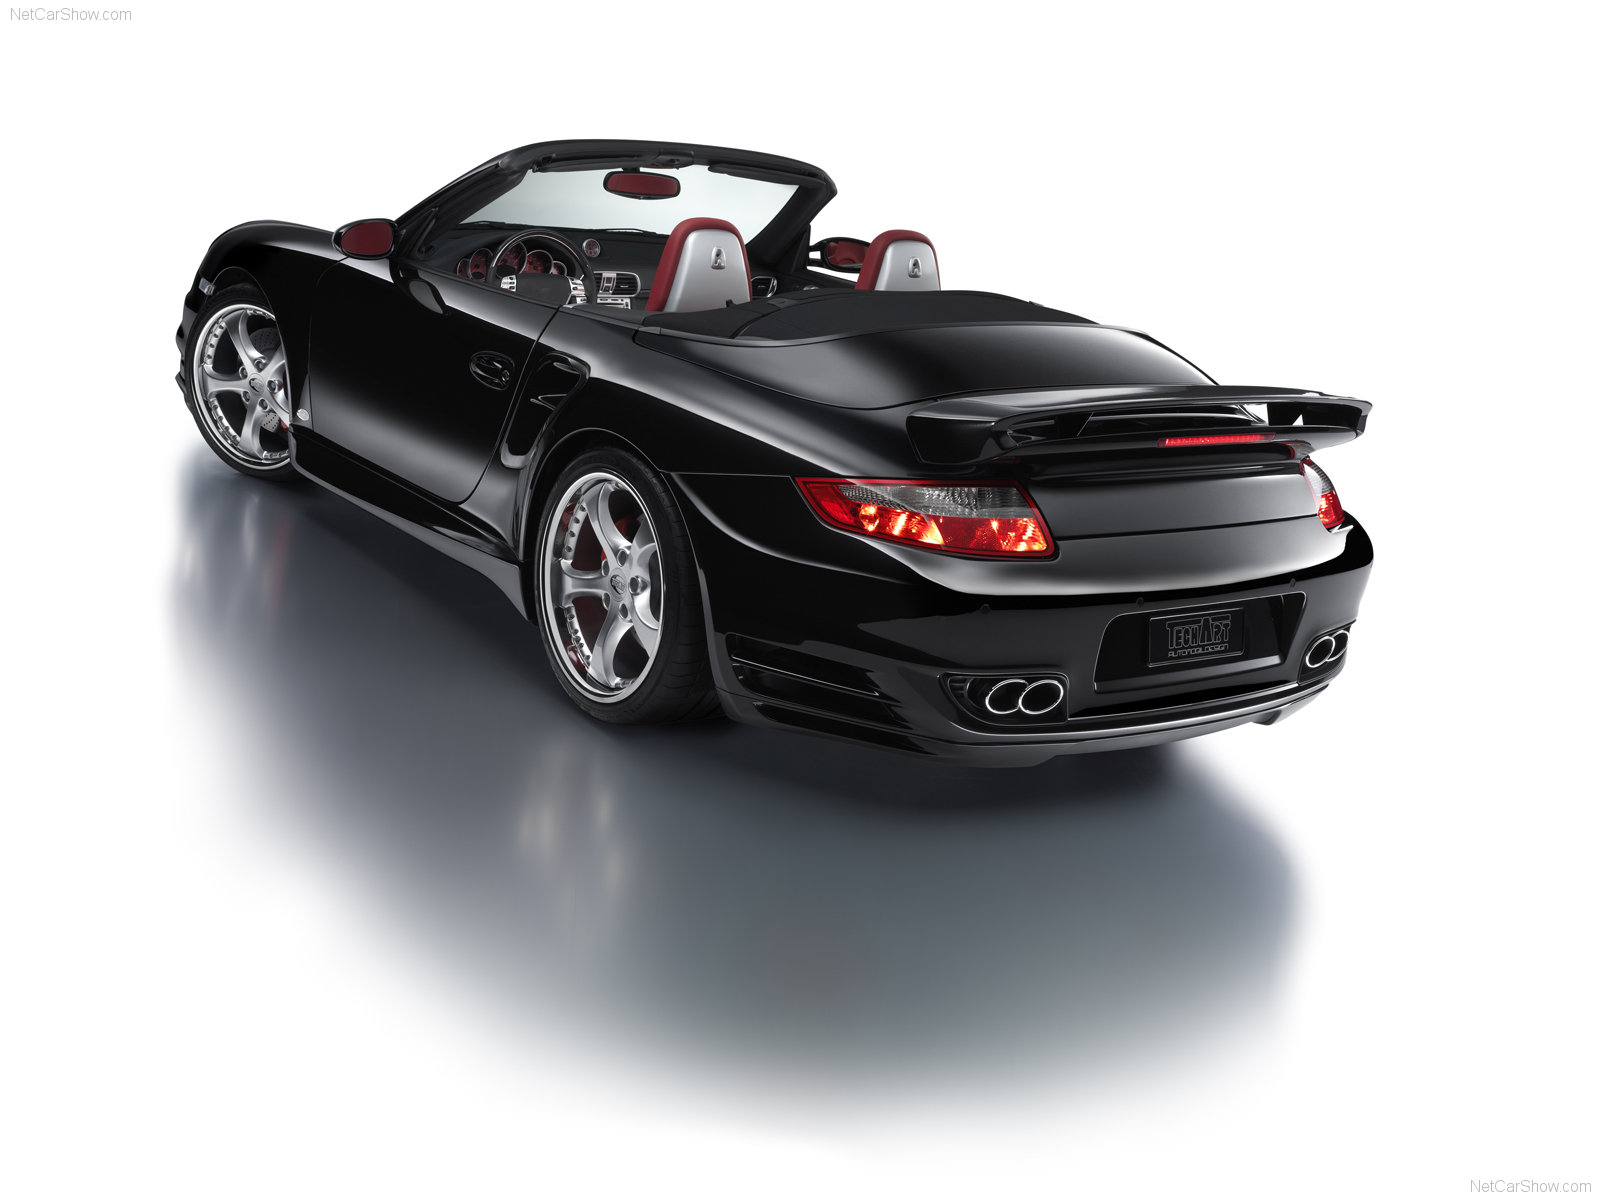 Techart 911 Turbo Cabriolet photo 49563